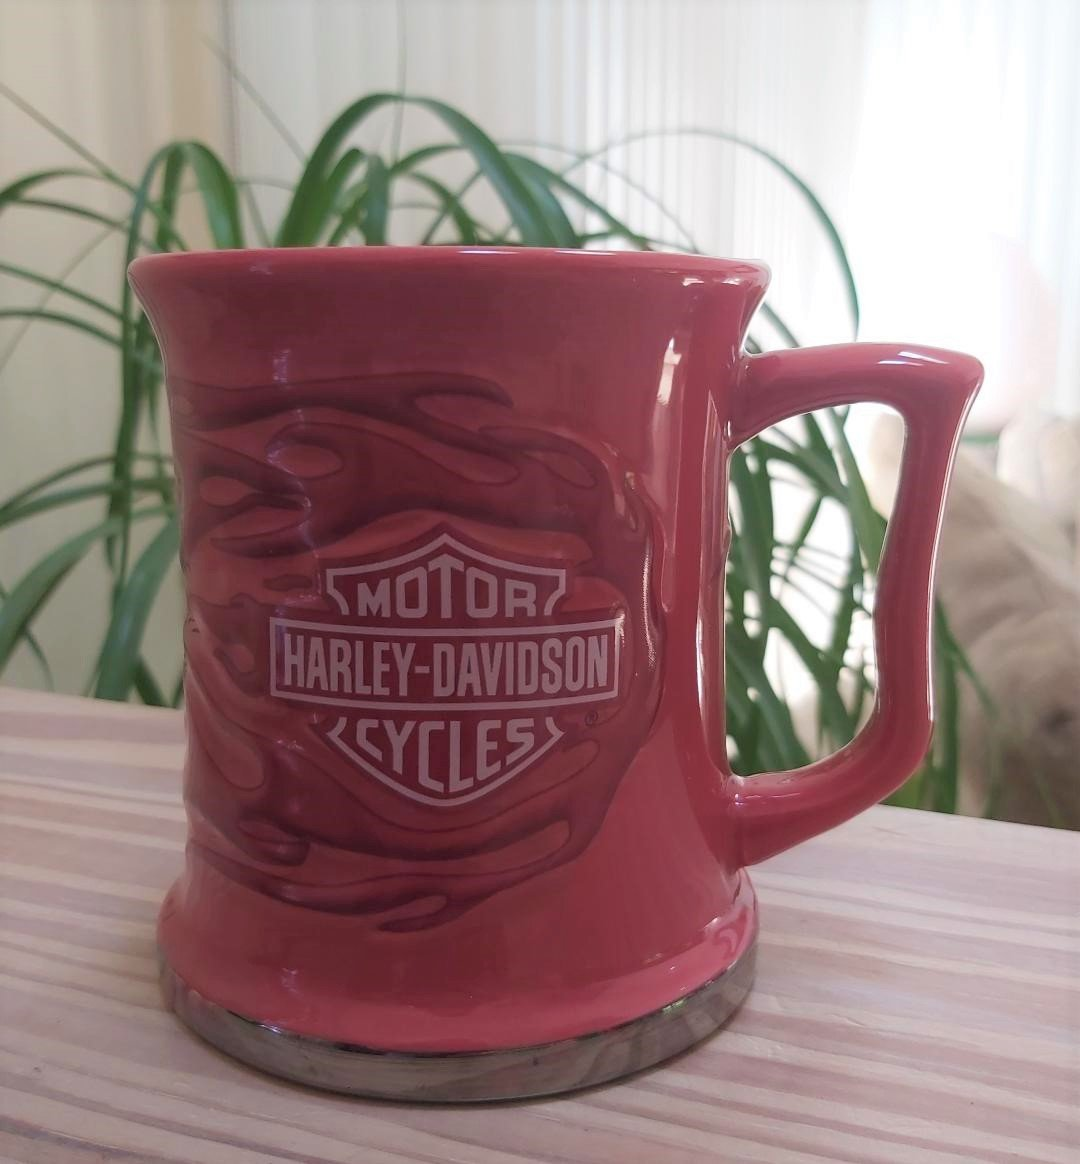 Harley-Davidson Motor Cycles Pink Duo Flame 13 oz. Relief Ceramic Coffee Cup / Mug by Russ - NWT!